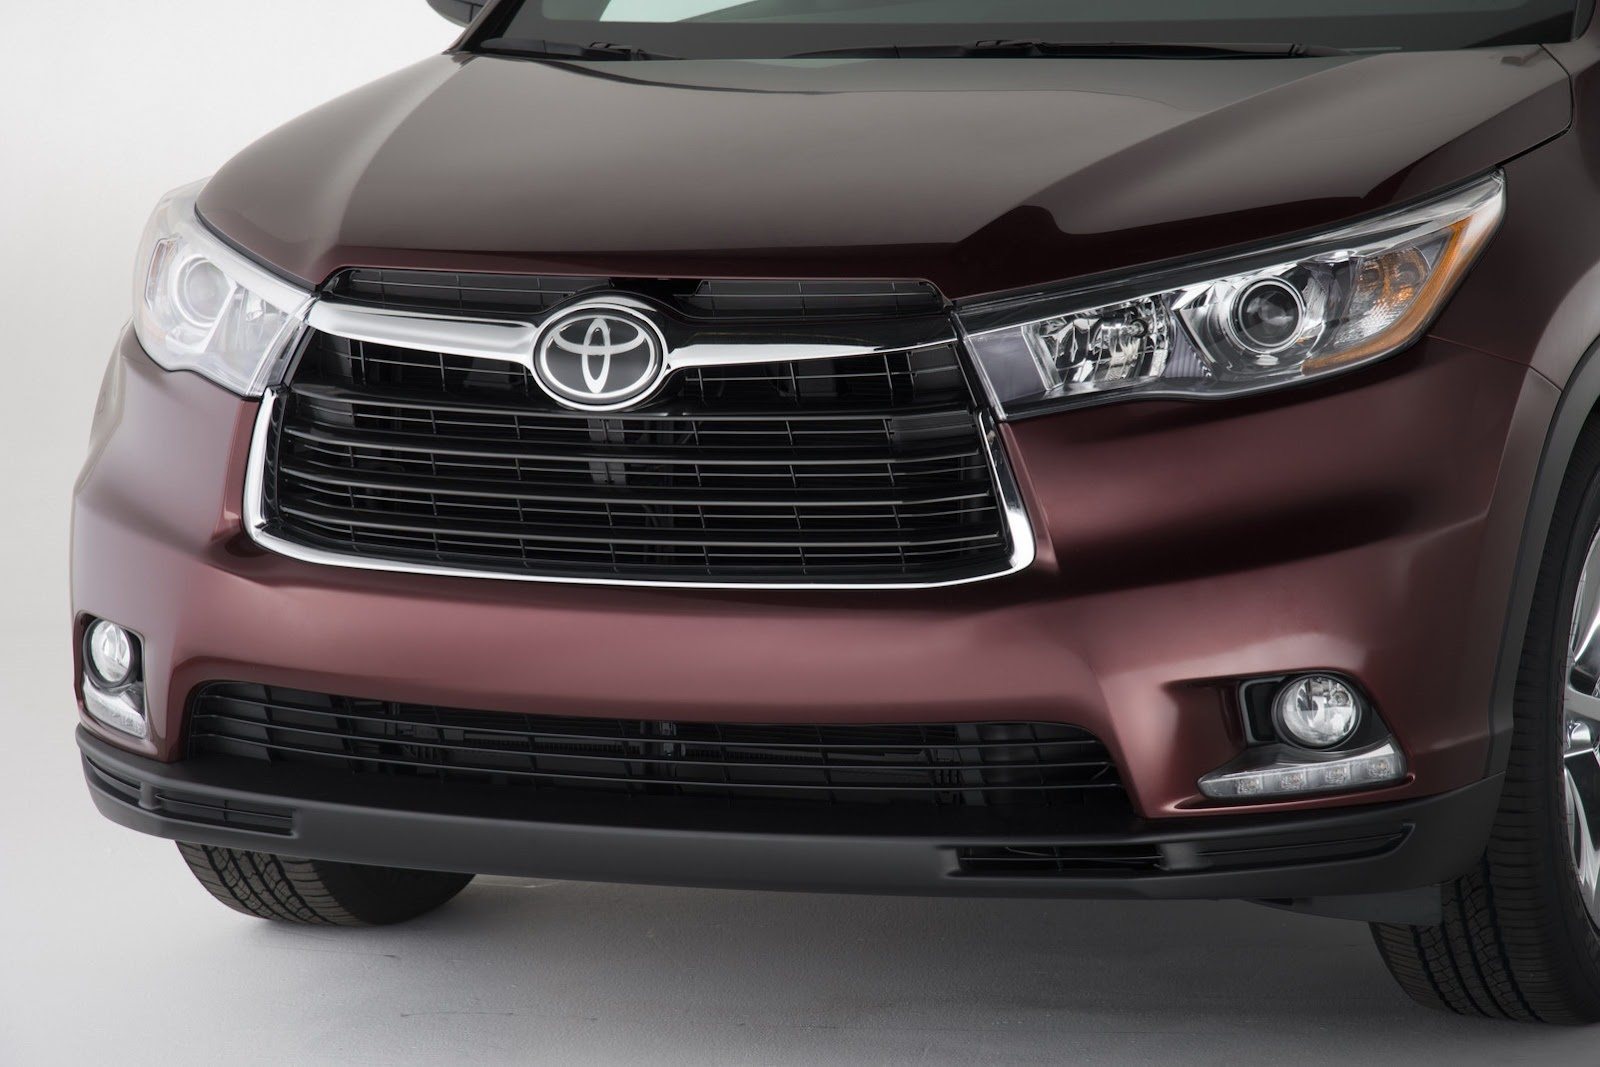 Toyota Officially Unwraps All-New 2014 Highlander Crossover with ...